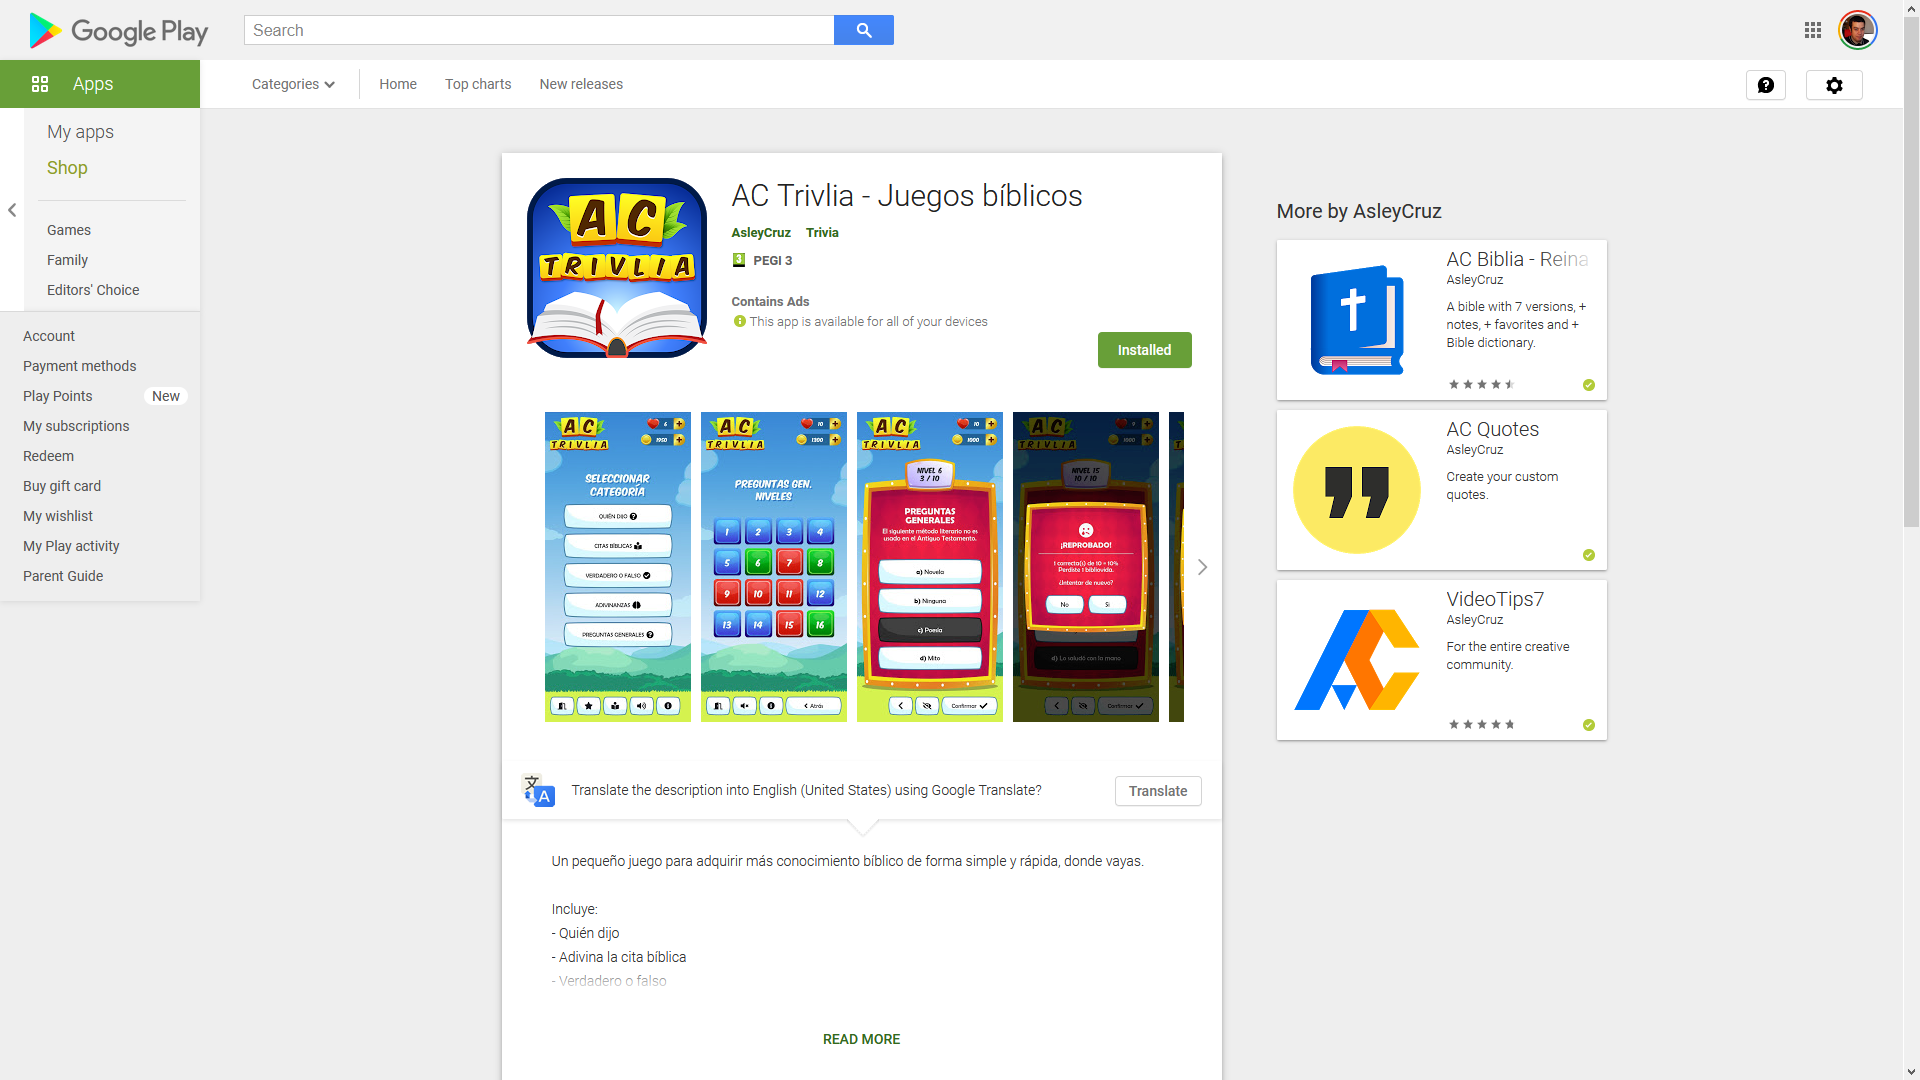 AC-Trivlia in the Google Play store